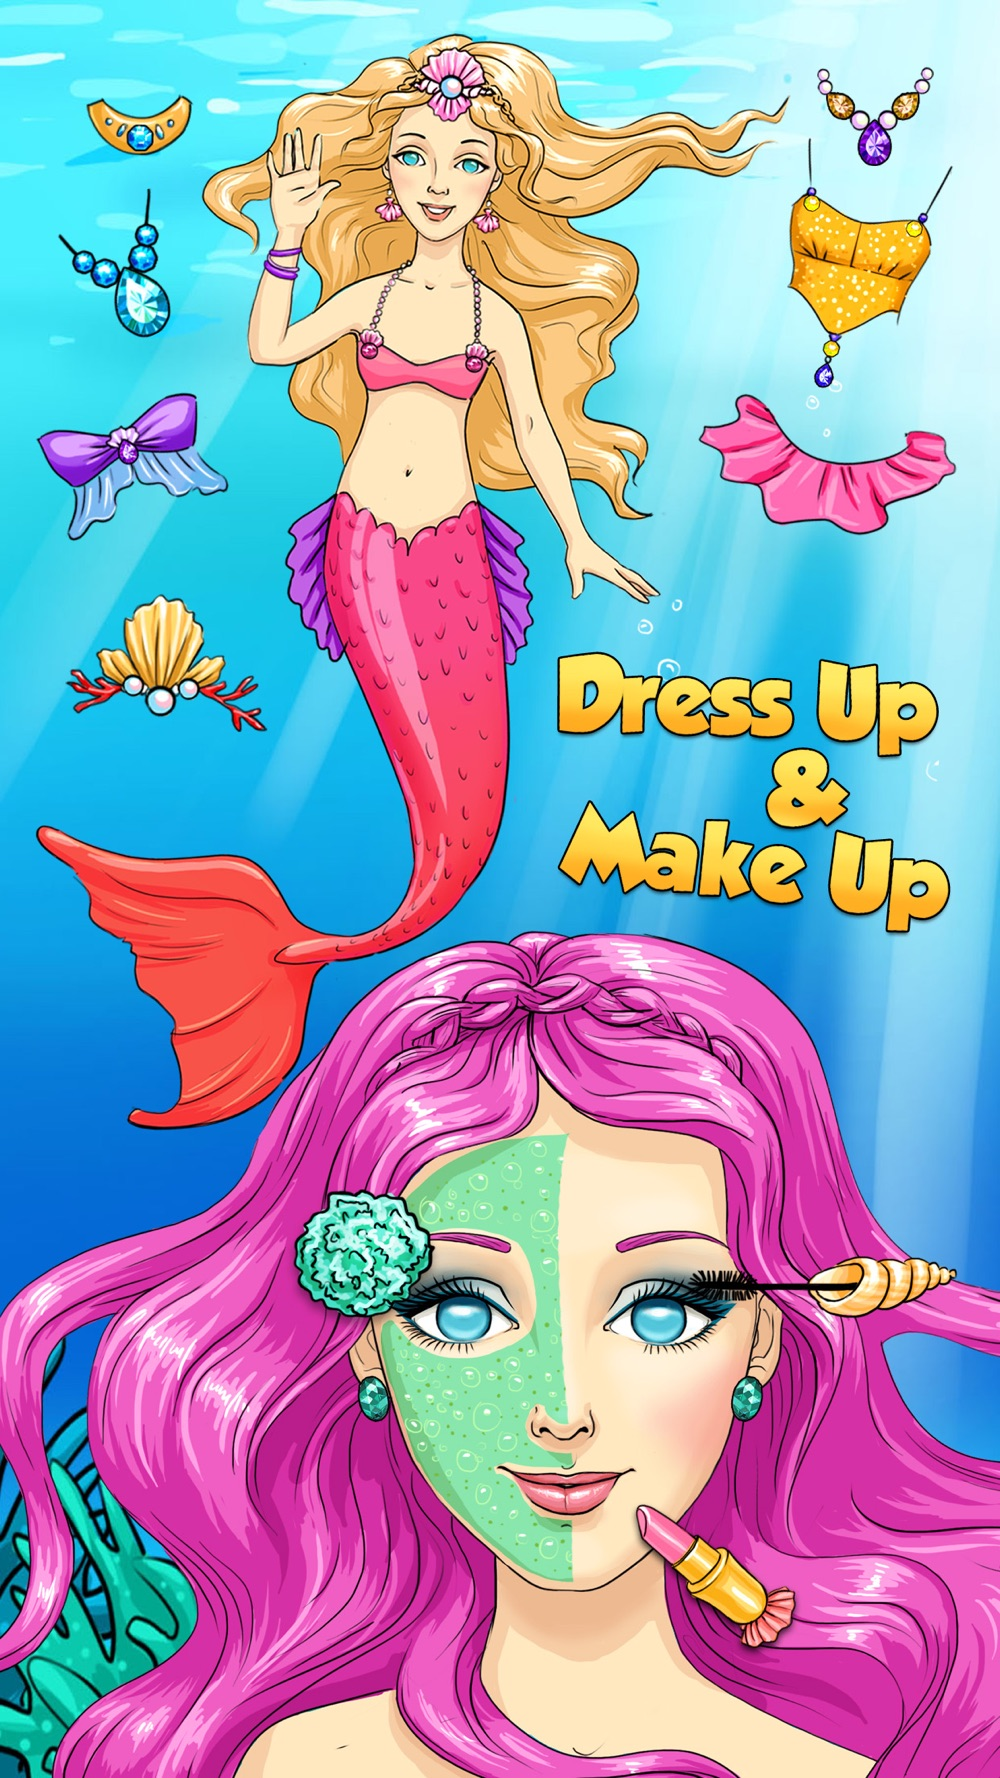 Hack tool for Mermaid Ava and Friends - Ocean Princess Hair Care, Make Up Salon, Dress Up and Underwater Adventures